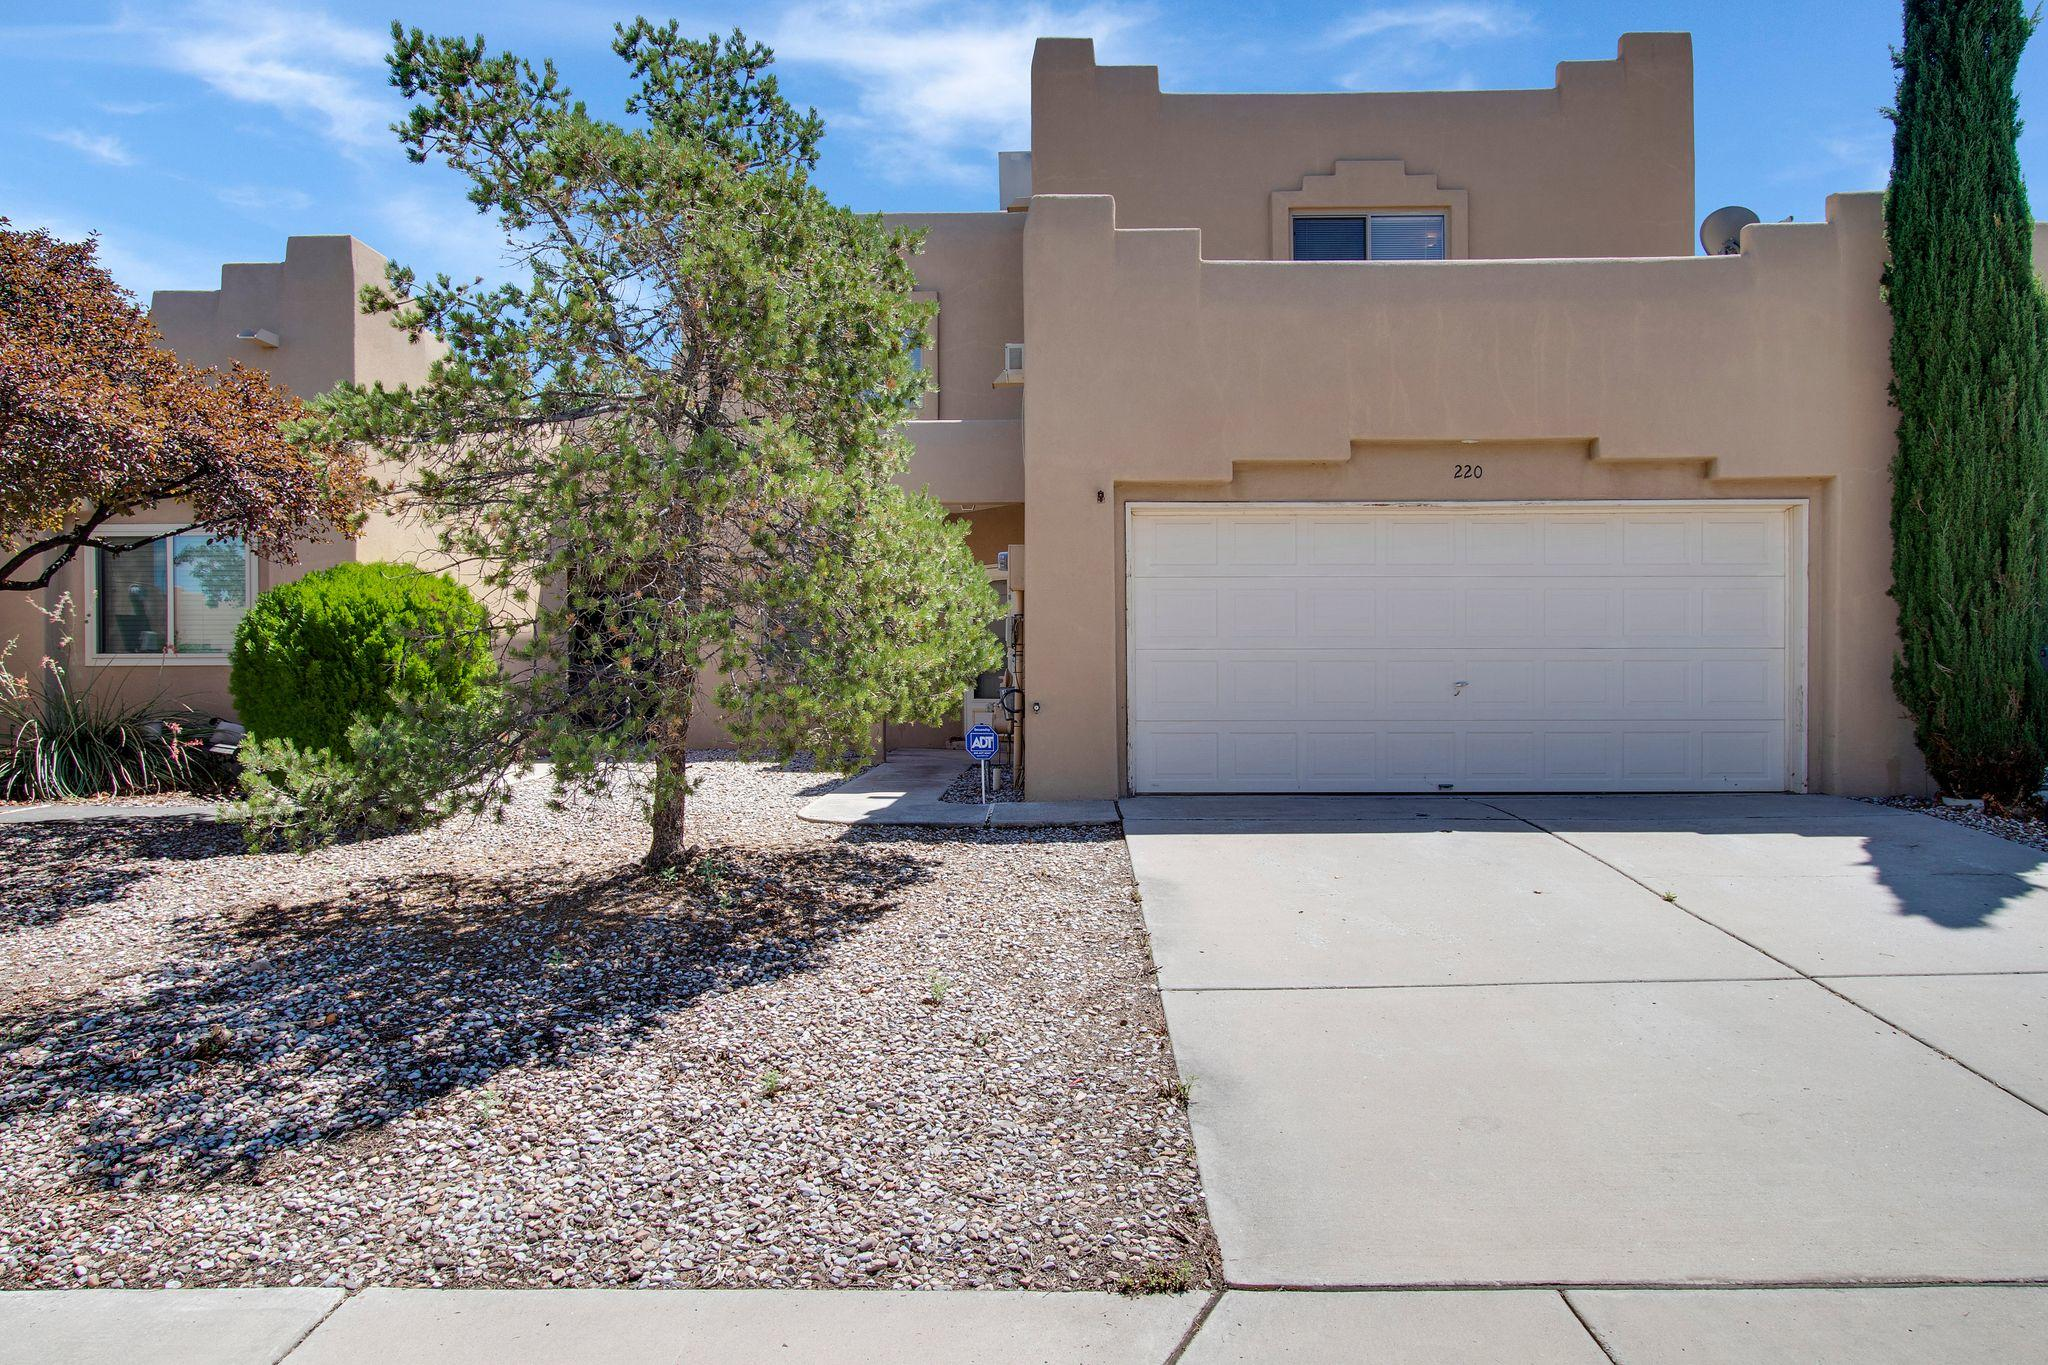 Welcome to your spacious townhome just minutes from Kirtland Air Force Base! You will enjoy the mountain views from your generous back yard and upstairs East-facing bedrooms. There is a neighborhood park and courtyard providing space between the units and allowing for the mountains to shine through. Inside the home, you'll walk in to an abundant living room area with a gas fireplace and crisp, modern flooring that flows into the kitchen. You'll find a sliding glass door leading you to your own back yard patio, providing indoor/outdoor living. Upstairs, there are a total of four bedrooms and two full bathrooms! All of this comes at a price point under $200,000.